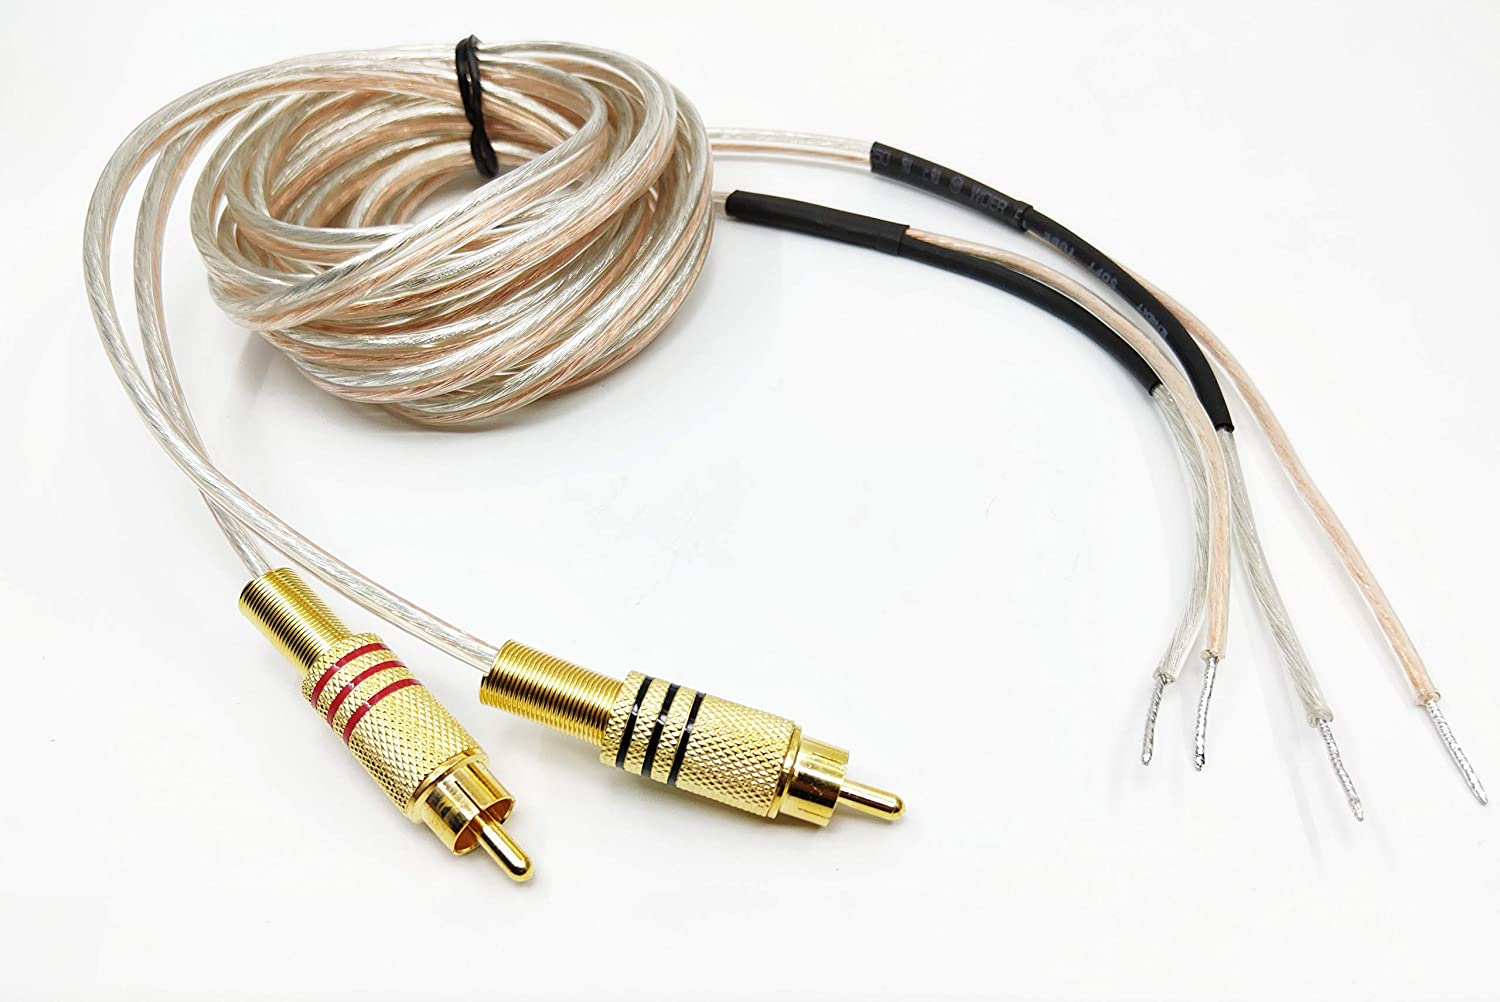 Rca Cable Wiring Wiring Diagrams All